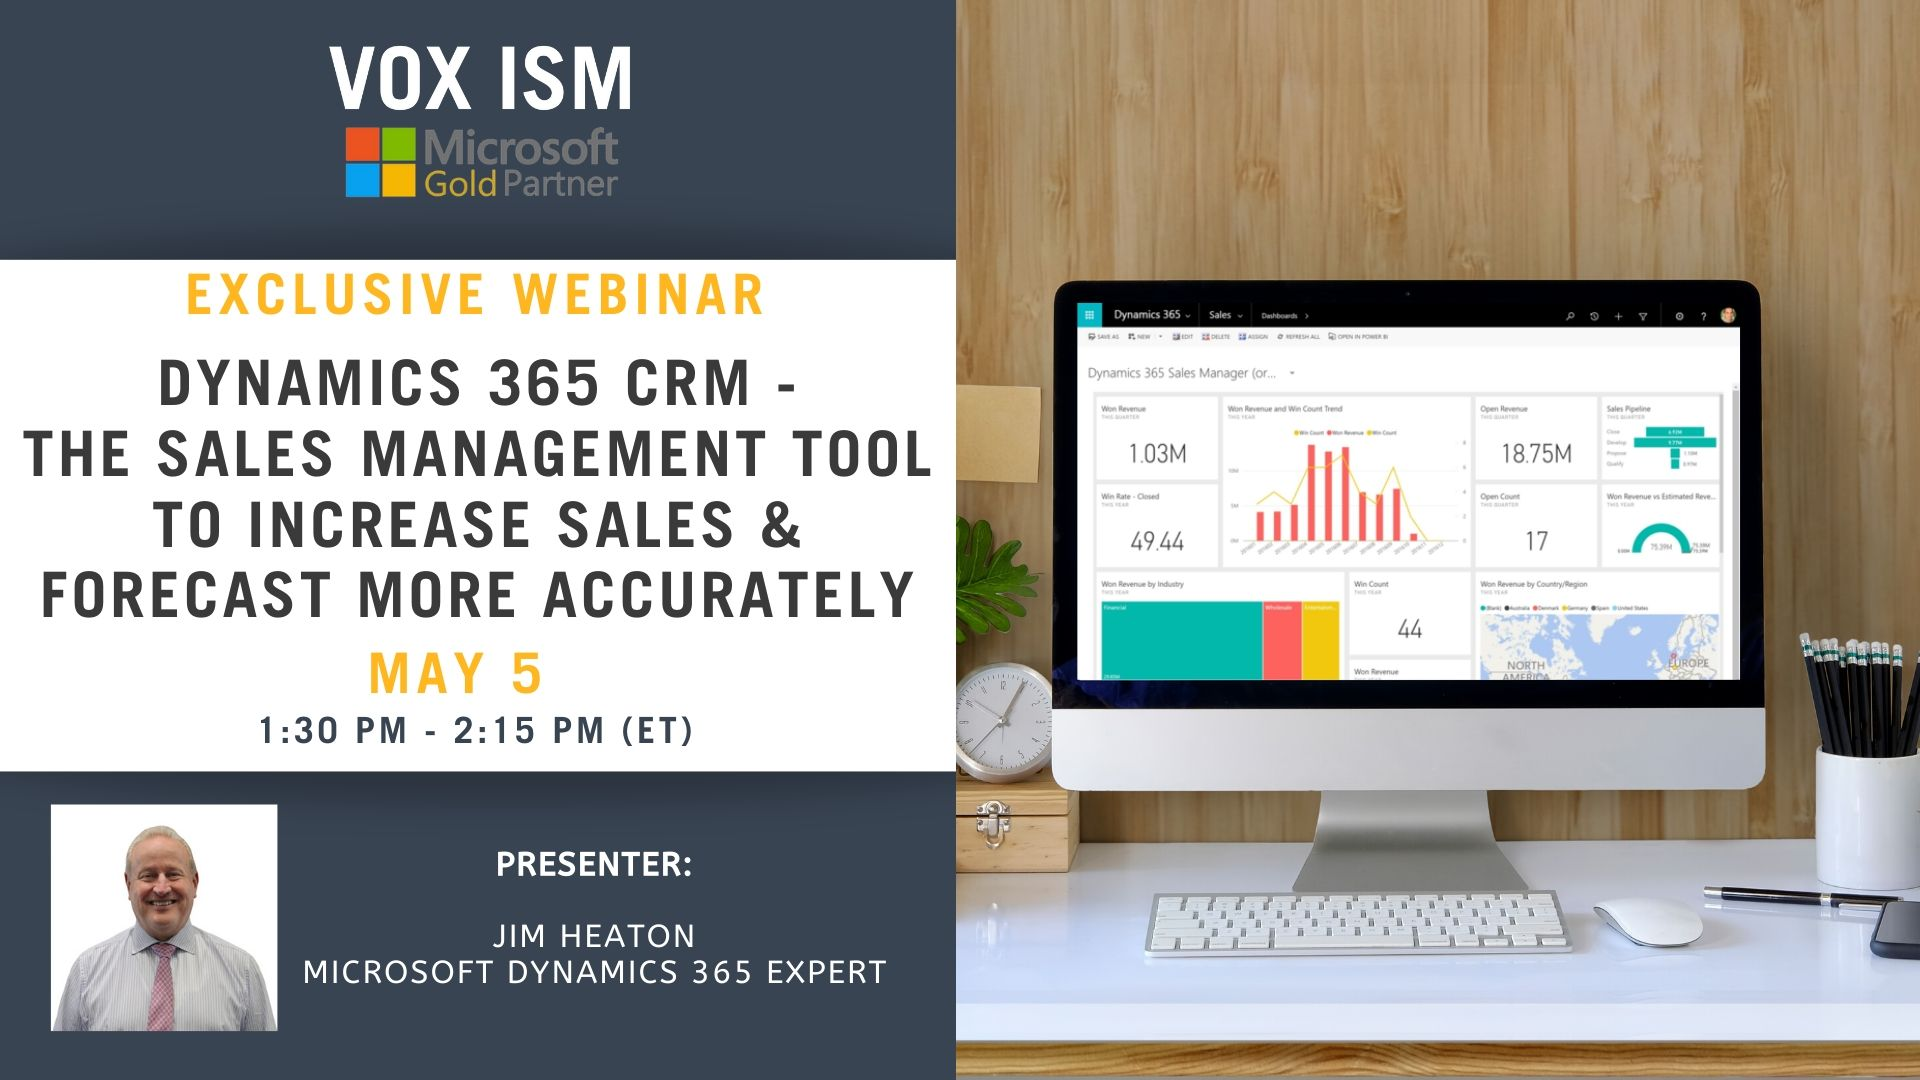 CRM - The Sales Management Tool to Increase Sales & Forecast More Accurately - May 5 - Webinar VOX ISM